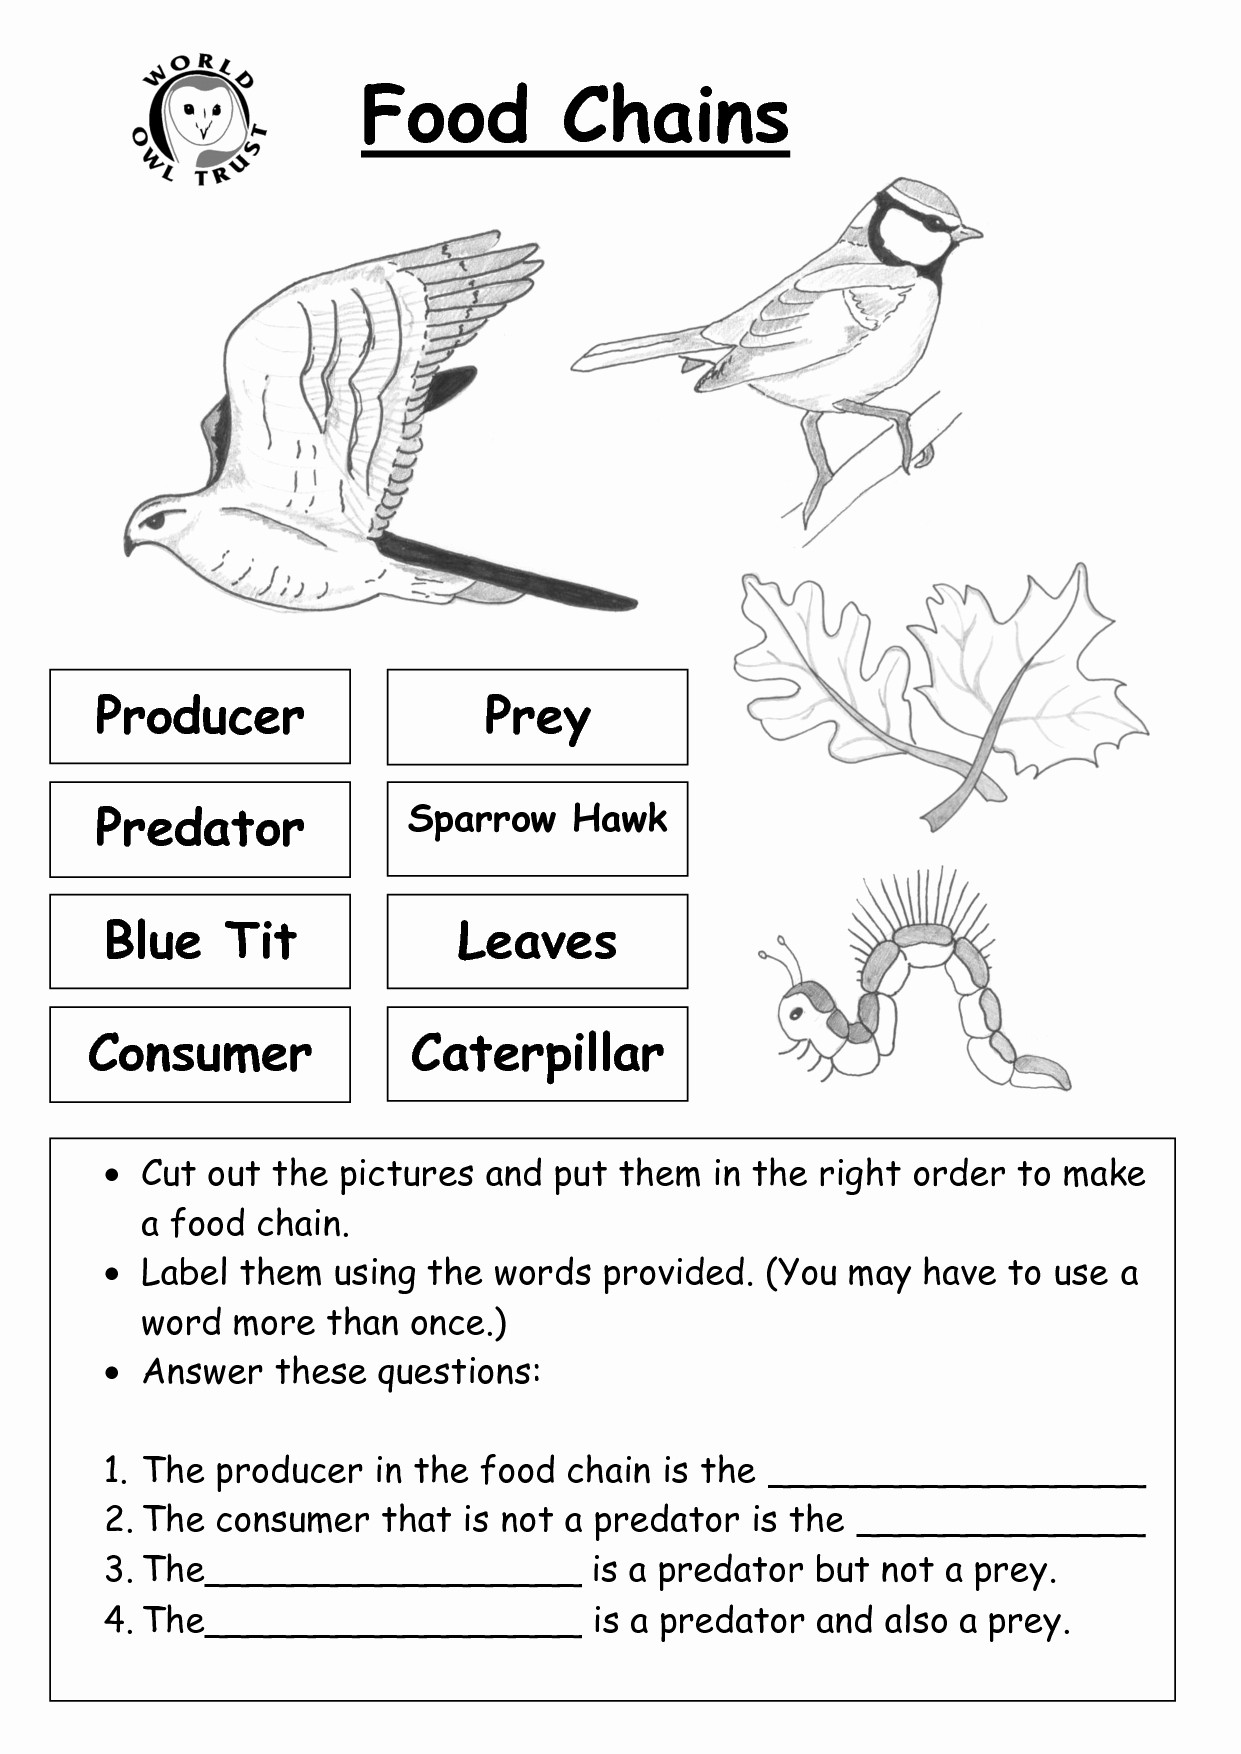 Food Chain Worksheet Answers